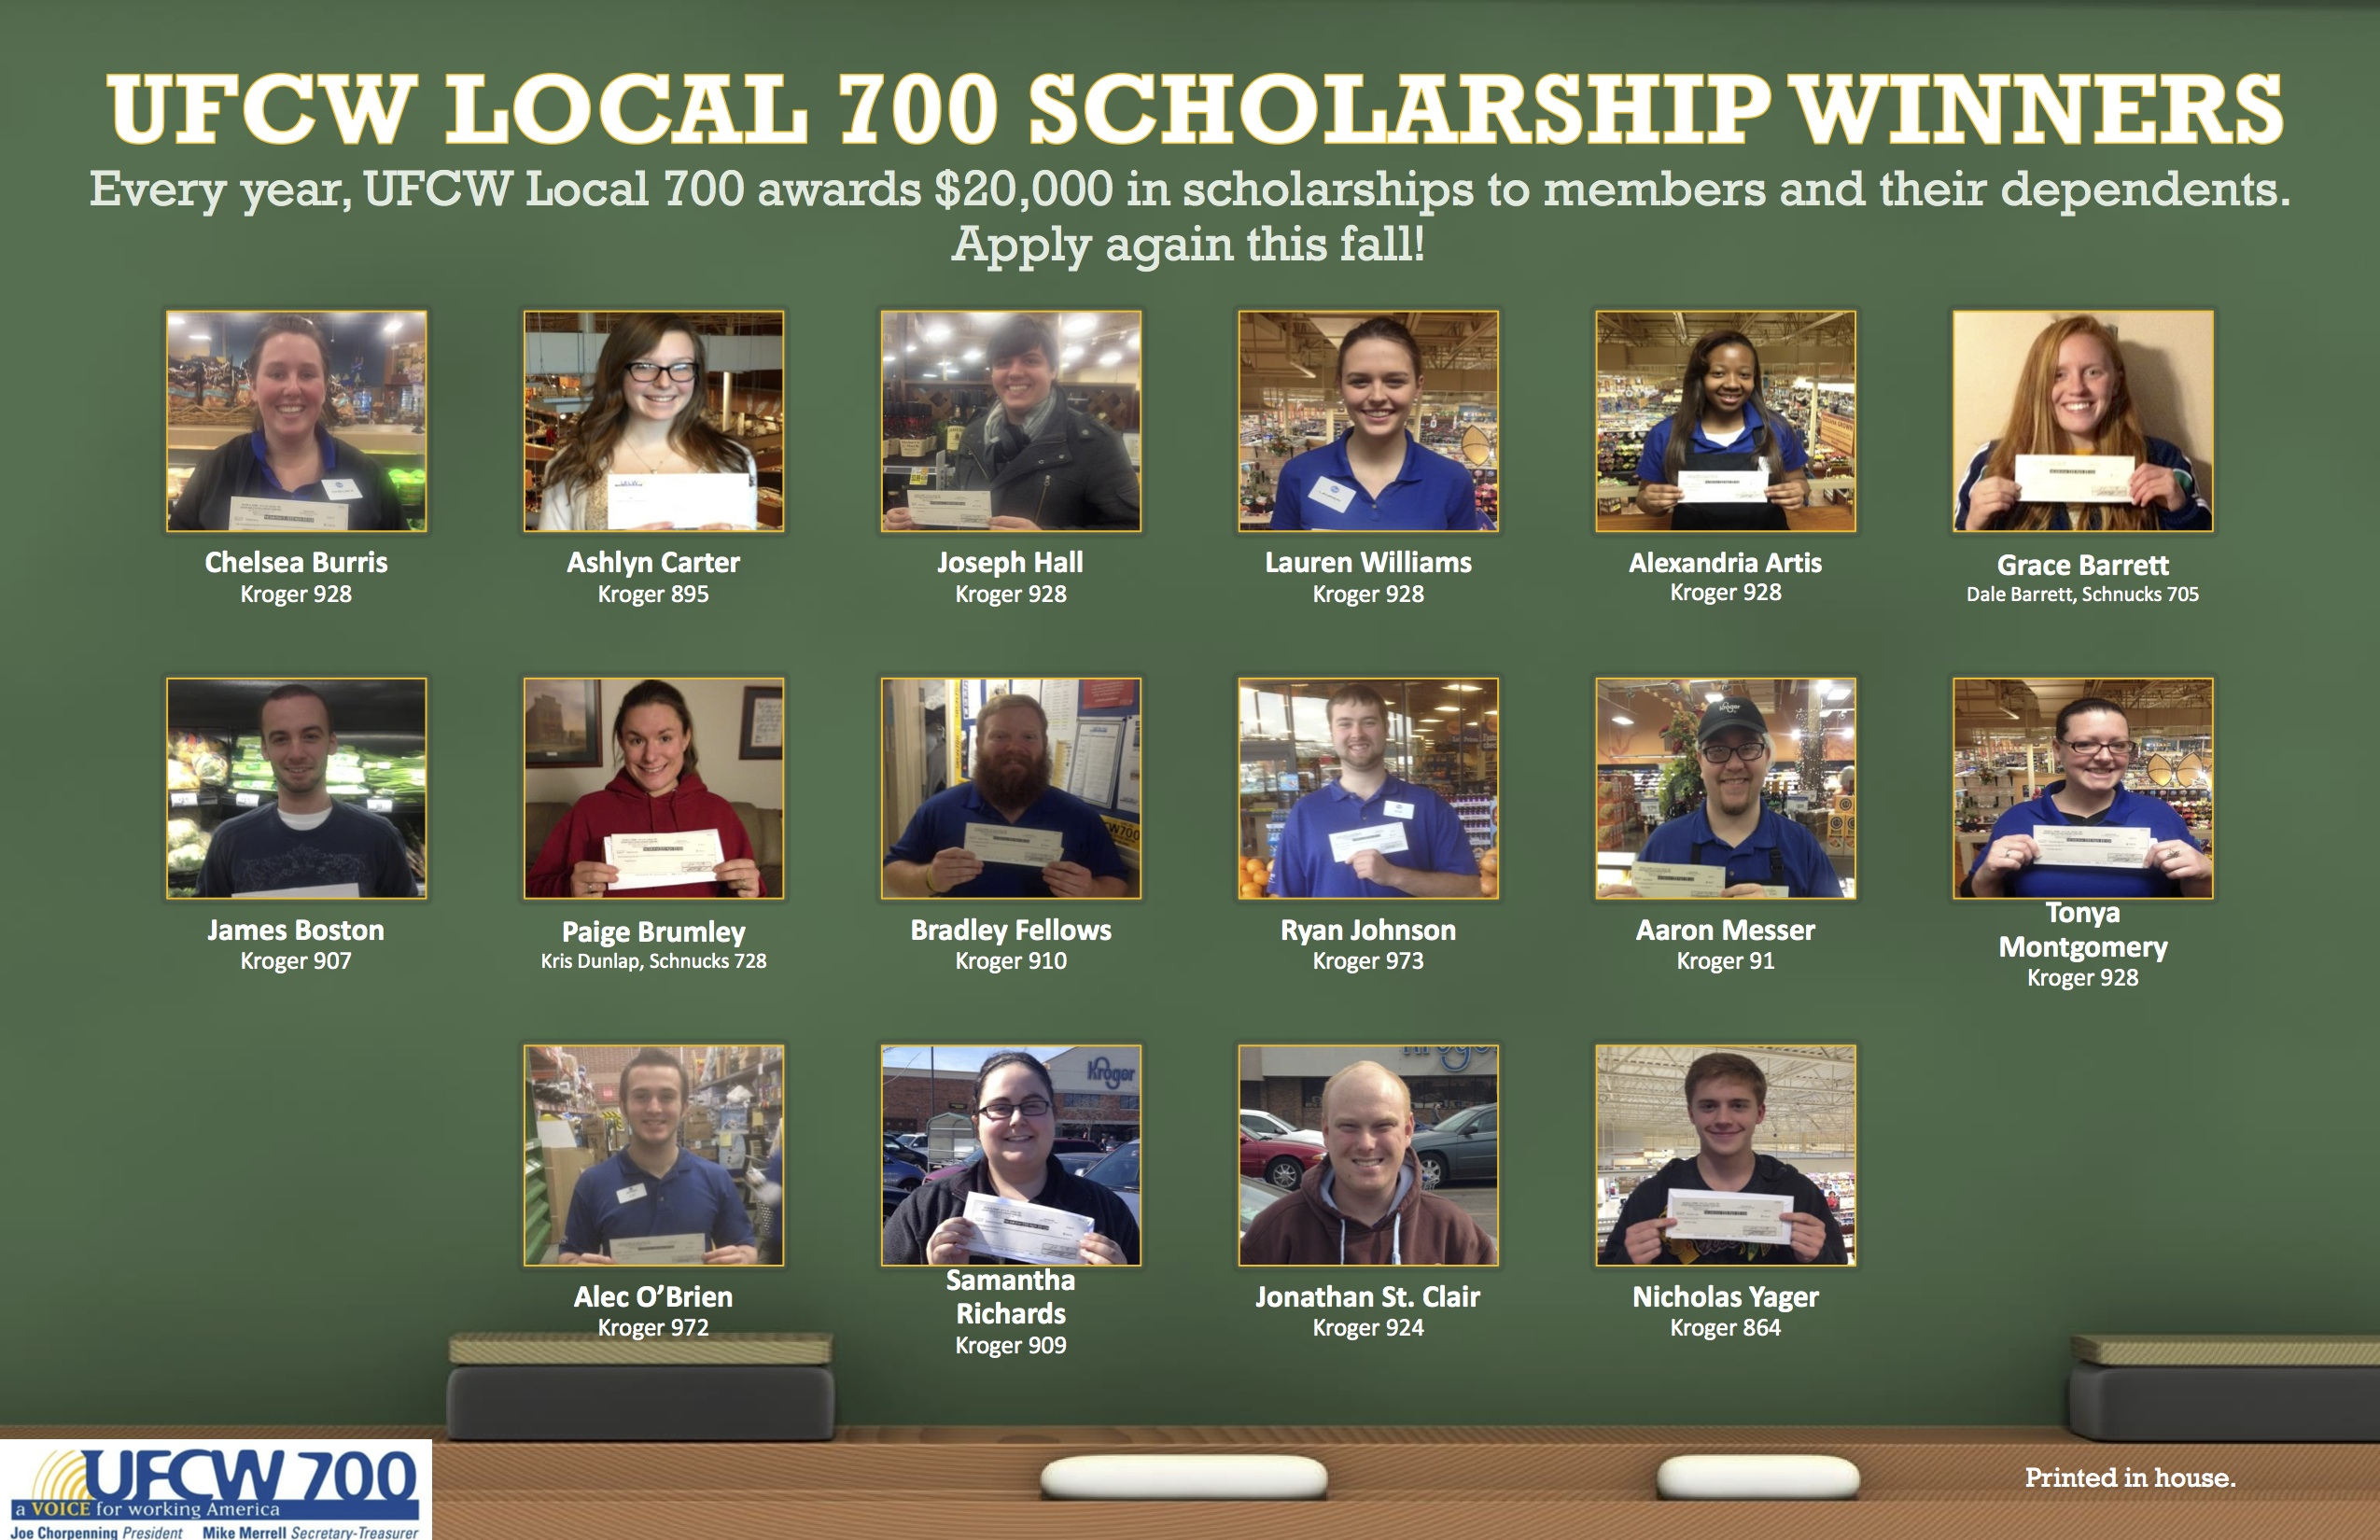 SCHOLARSHIP WINNERS POSTER